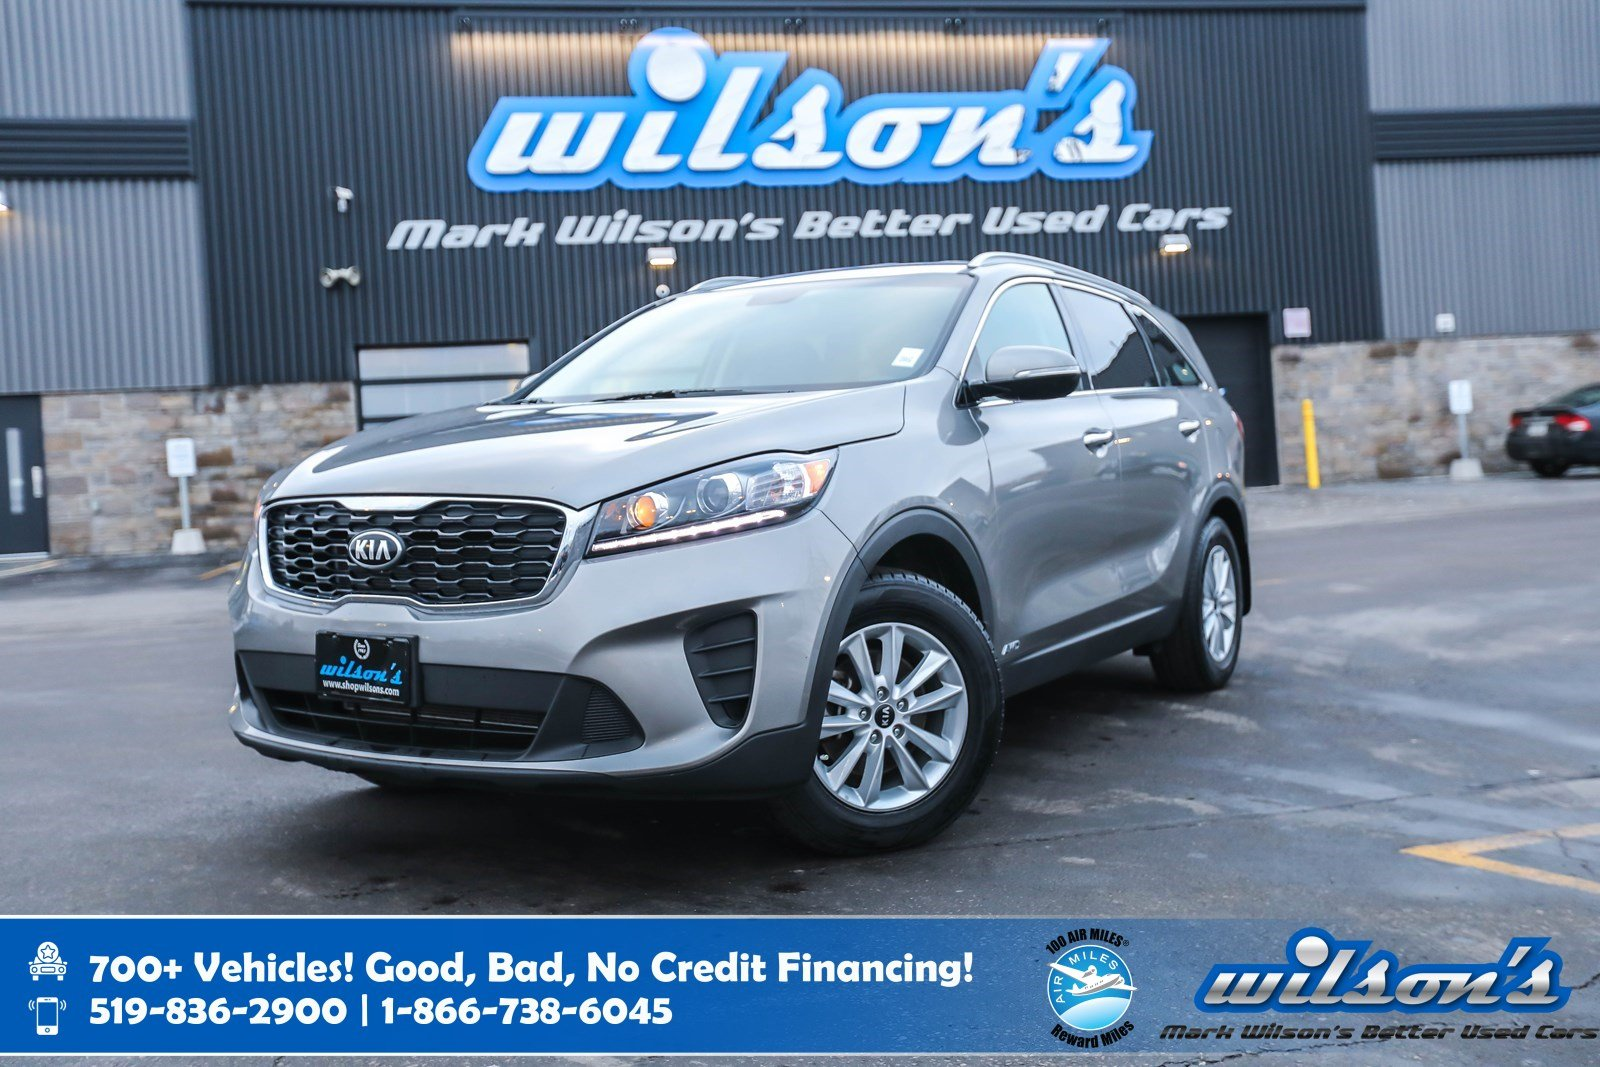 Certified Pre-Owned 2019 Kia Sorento LX AWD, Heated Seats + Steering, Roof Rails, Apple CarPlay + Android Auto, Bluetooth and more!